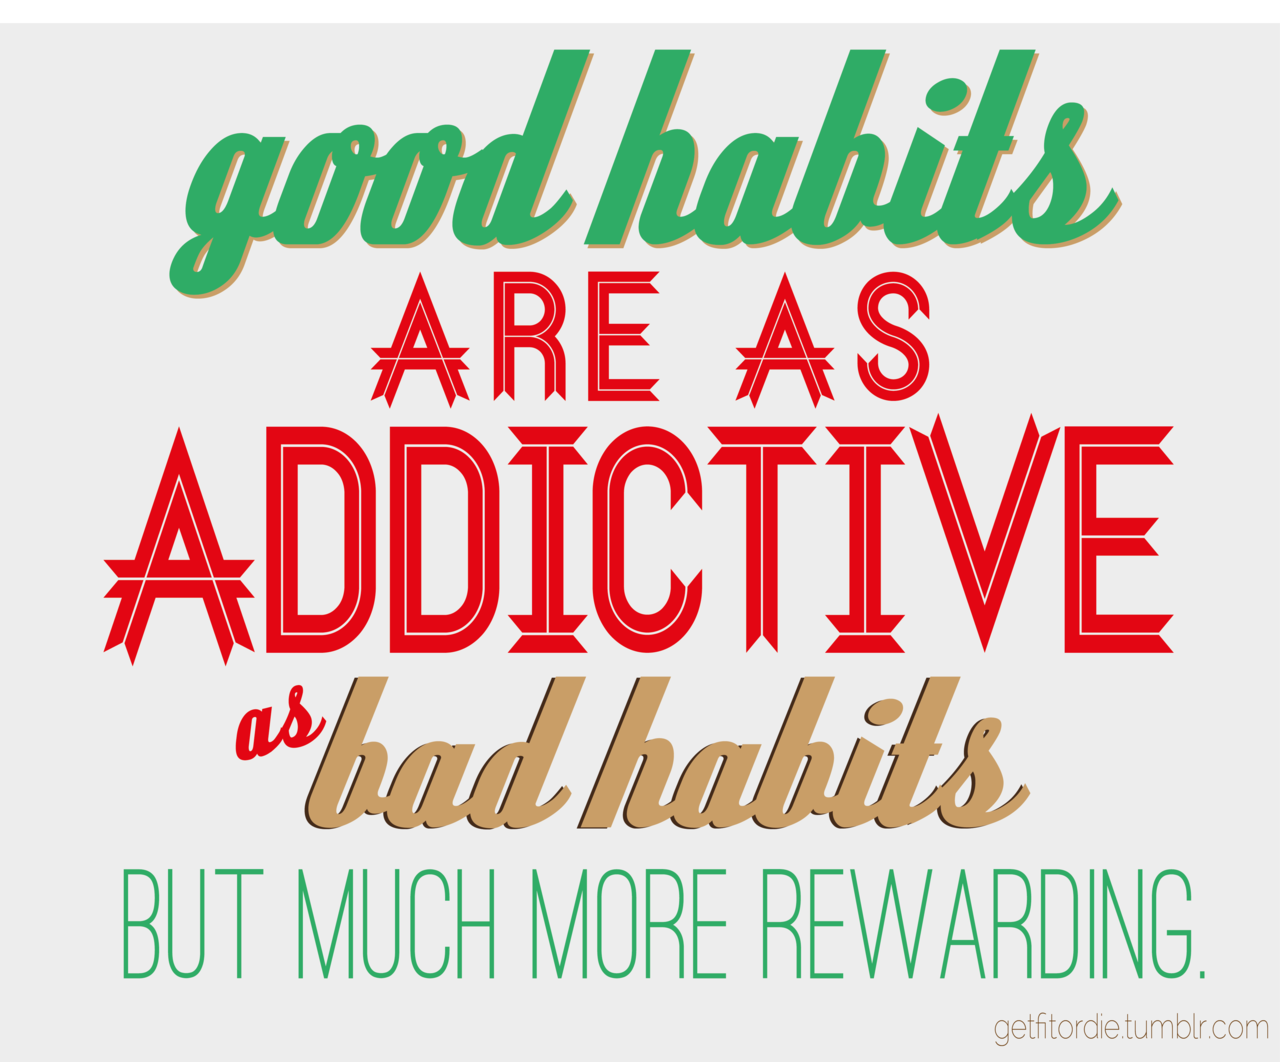 "With a small amount of initial discipline, you can create a new habit that requires little effort to maintain. Here are some tips for creating new habits and making them stick: 1. Commit to Thirty Days – Three to four weeks is all the time you need to make a habit automatic. If you can make it through the initial conditioning phase, it becomes much easier to sustain. A month is a good block of time to commit to a change since it easily fits in your calendar. 2. Make it Daily – Consistency is critical if you want to make a habit stick. If you want to start exercising, go to the gym every day for your first thirty days. Going a couple times a week will make it harder to form the habit. Activities you do once every few days are trickier to lock in as habits. 3. Start Simple – Don't try to completely change your life in one day. It is easy to get over-motivated and take on too much. If you wanted to study two hours a day, first make the habit to go for thirty minutes and build on that. 4. Remind Yourself – Around two weeks into your commitment it can be easy to forget. Place reminders to execute your habit each day or you might miss a few days. If you miss time it defeats the purpose of setting a habit to begin with. 5. Stay Consistent – The more consistent your habit the easier it will be to stick. If you want to start exercising, try going at the same time, to the same place for your thirty days. When cues like time of day, place and circumstances are the same in each case it is easier to stick. 6. Get a Buddy – Find someone who will go along with you and keep you motivated if you feel like quitting. 7. Form a Trigger – A trigger is a ritual you use right before executing your habit. If you wanted to wake up earlier, this could mean waking up in exactly the same way each morning. If you wanted to quit smoking you could practice snapping your fingers each time you felt the urge to pick up a cigarette. 8. Replace Lost Needs - If you are giving up something in your habit, make sure you are adequately replacing any needs you've lost. If watching television gave you a way to relax, you could take up meditation or reading as a way to replace that same need. 9. Be Imperfect – Don't expect all your attempts to change habits to be successful immediately. It took me four independent tries before I started exercising regularly. Now I love it. Try your best, but expect a few bumps along the way. 10. Use ""But"" – A prominent habit changing therapist once told me this great technique for changing bad thought patterns. When you start to think negative thoughts, use the word ""but"" to interrupt it. ""I'm no good at this, but, if I work at it I might get better later."" 11. Remove Temptation - Restructure your environment so it won't tempt you in the first thirty days. Remove junk food from your house, cancel your cable subscription, throw out the cigarettes so you won't need to struggle with willpower later. 12. Associate With Role Models - Spend more time with people who model the habits you want to mirror. A recent study found that having an obese friend indicated you were more likely to become fat. You become what you spend time around. 13. Run it as an Experiment - Withhold judgment until after a month has past and use it as an experiment in behavior. Experiments can't fail, they just have different results so it will give you a different perspective on changing your habit. 14. Swish - A technique from NLP. Visualize yourself performing the bad habit. Next visualize yourself pushing aside the bad habit and performing an alternative. Finally, end that sequence with an image of yourself in a highly positive state. See yourself picking up the cigarette, see yourself putting it down and snapping your fingers, finally visualize yourself running and breathing free. Do it a few times until you automatically go through the pattern before executing the old habit. 15. Write it Down – A piece of paper with a resolution on it isn't that important. Writing that resolution is. Writing makes your ideas more clear and focuses you on your end result. 16. Know the Benefits - Familiarize yourself with the benefits of making a change. Get books that show the benefits of regular exercise. Notice any changes in energy levels after you take on a new diet. 17. Know the Pain – You should also be aware of the consequences. Exposing yourself to realistic information about the downsides of not making a change will give you added motivation. 18. Do it For Yourself - Don't worry about all the things you ""should"" have as habits. Instead tool your habits towards your goals and the things that motivate you. Weak guilt and empty resolutions aren't enough."